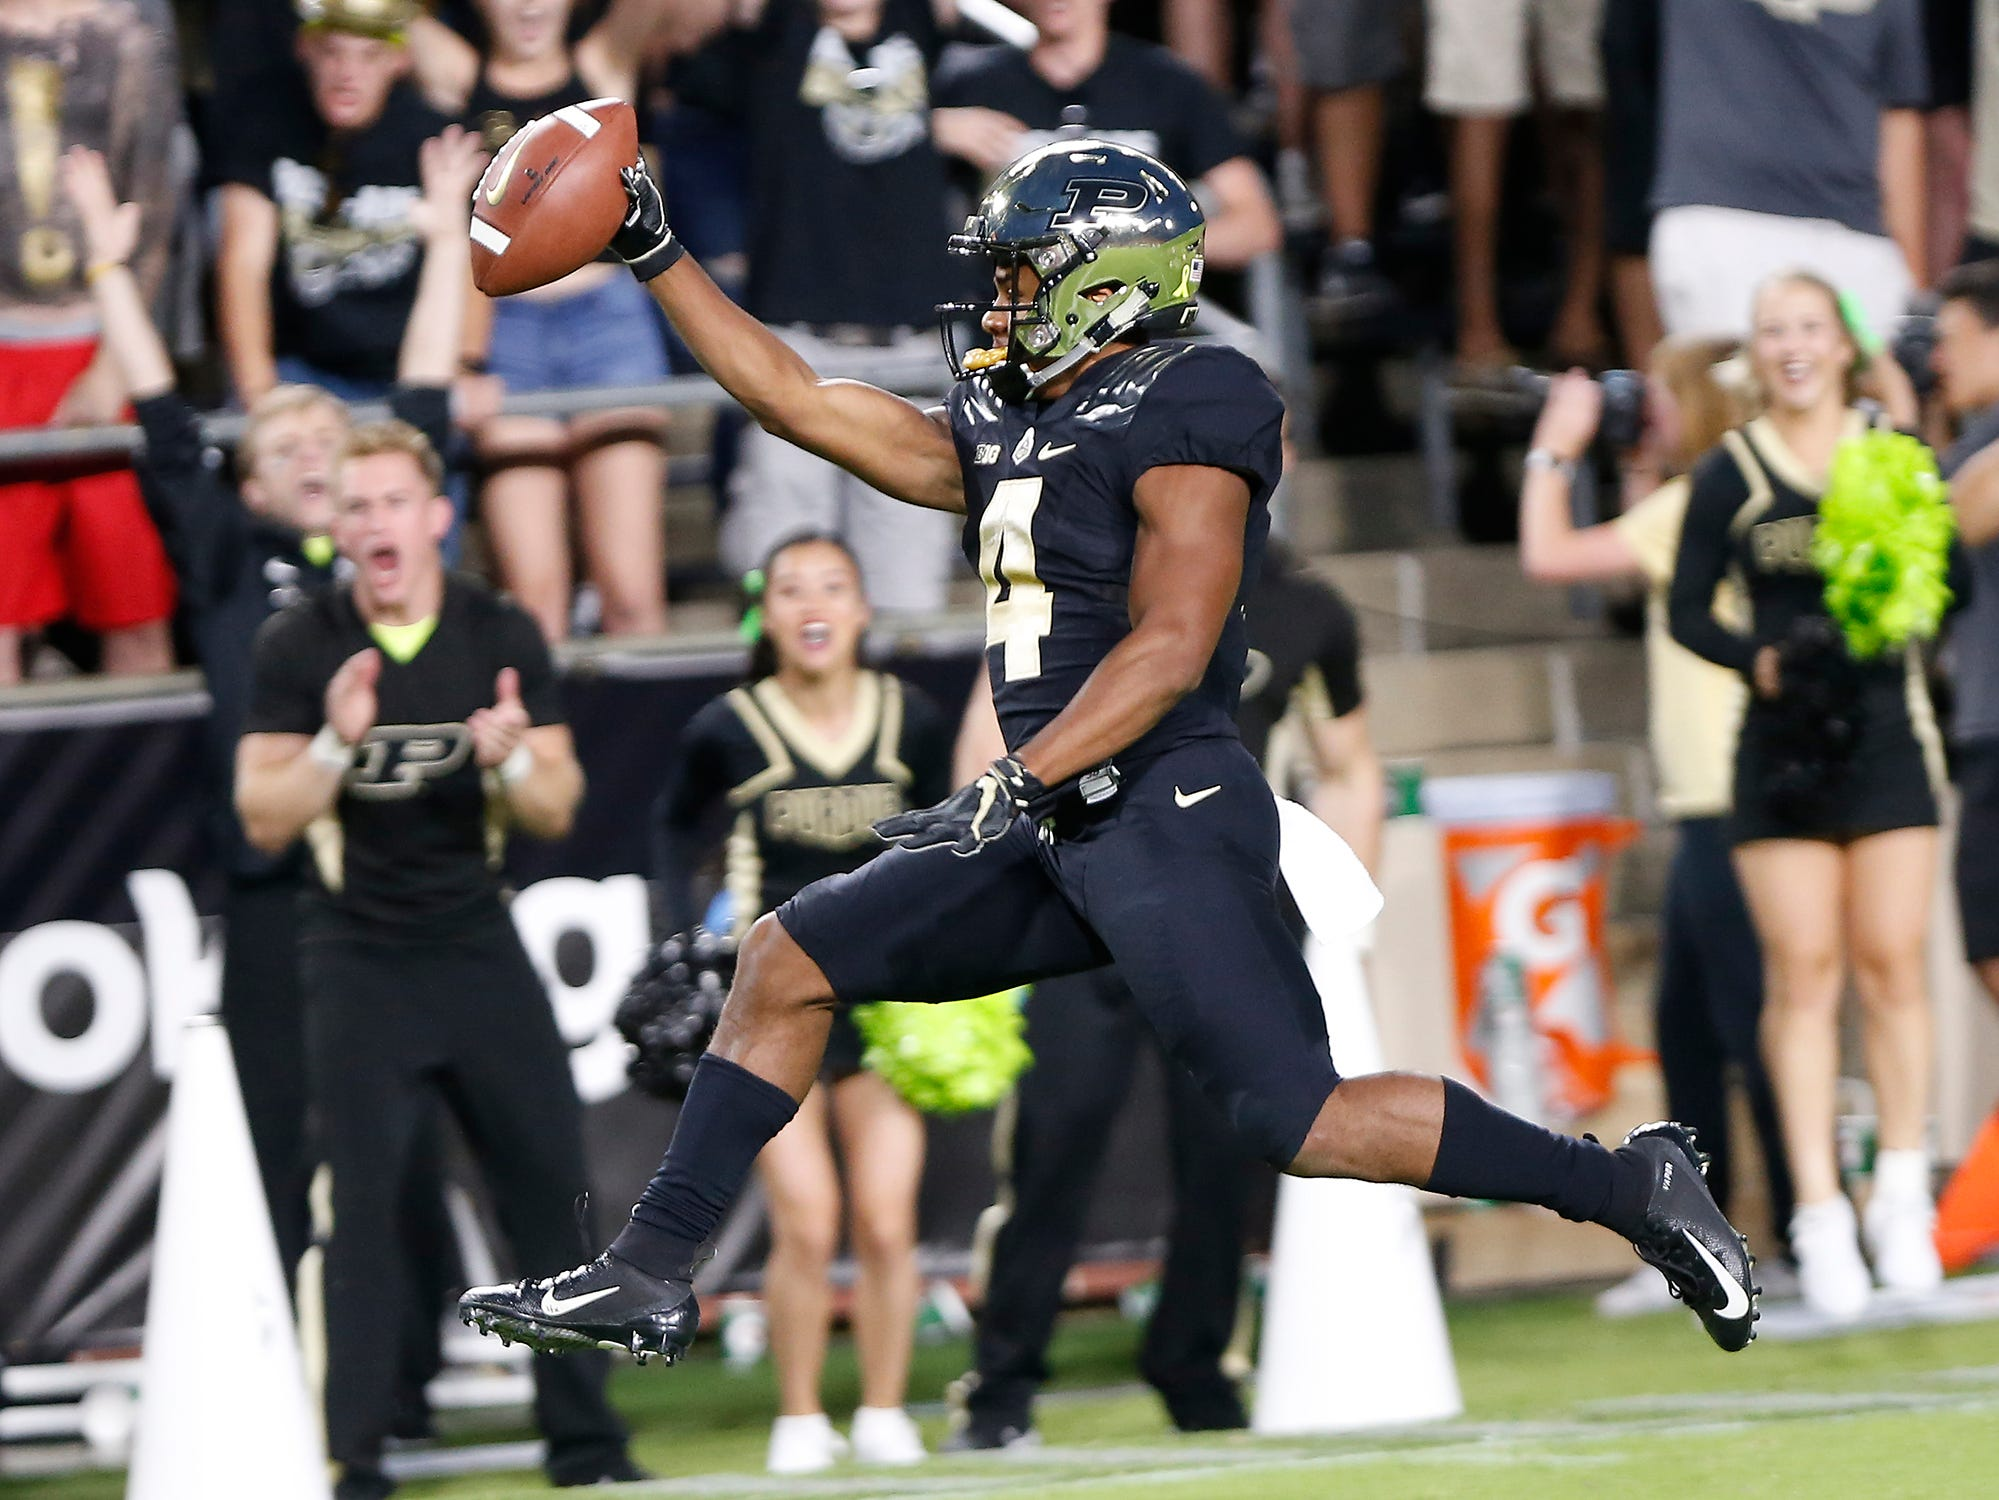 Rondale Moore races to the endzone for a touchdown at 4:20 in the first quarter against Northwestern Thursday, August 30, 2018, in West Lafayette. Purdue trailed Northwestern 14-7 after Moore's score.